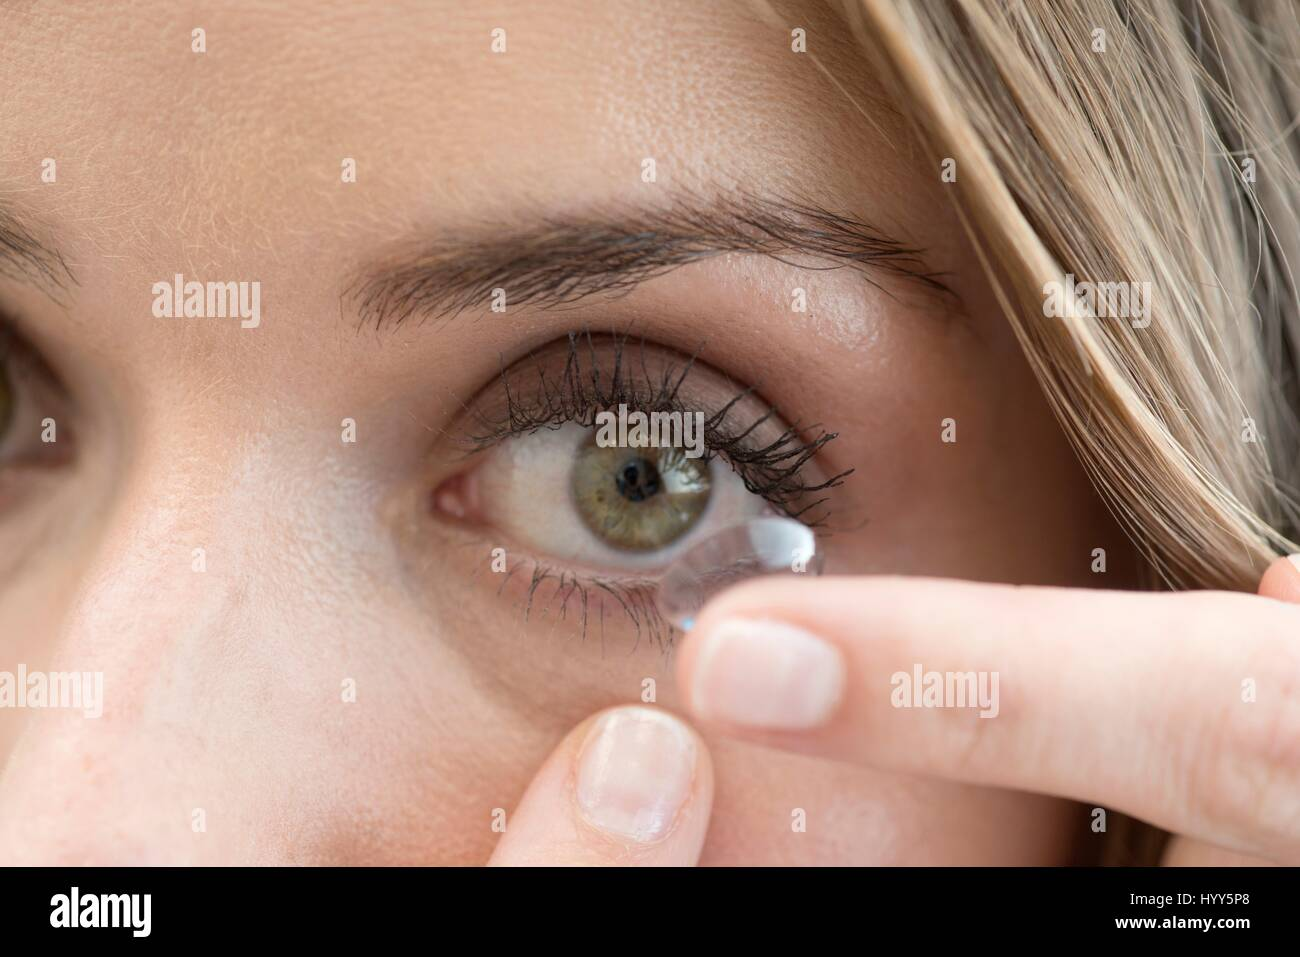 Mid adult woman putting contact lens in eye. - Stock Image